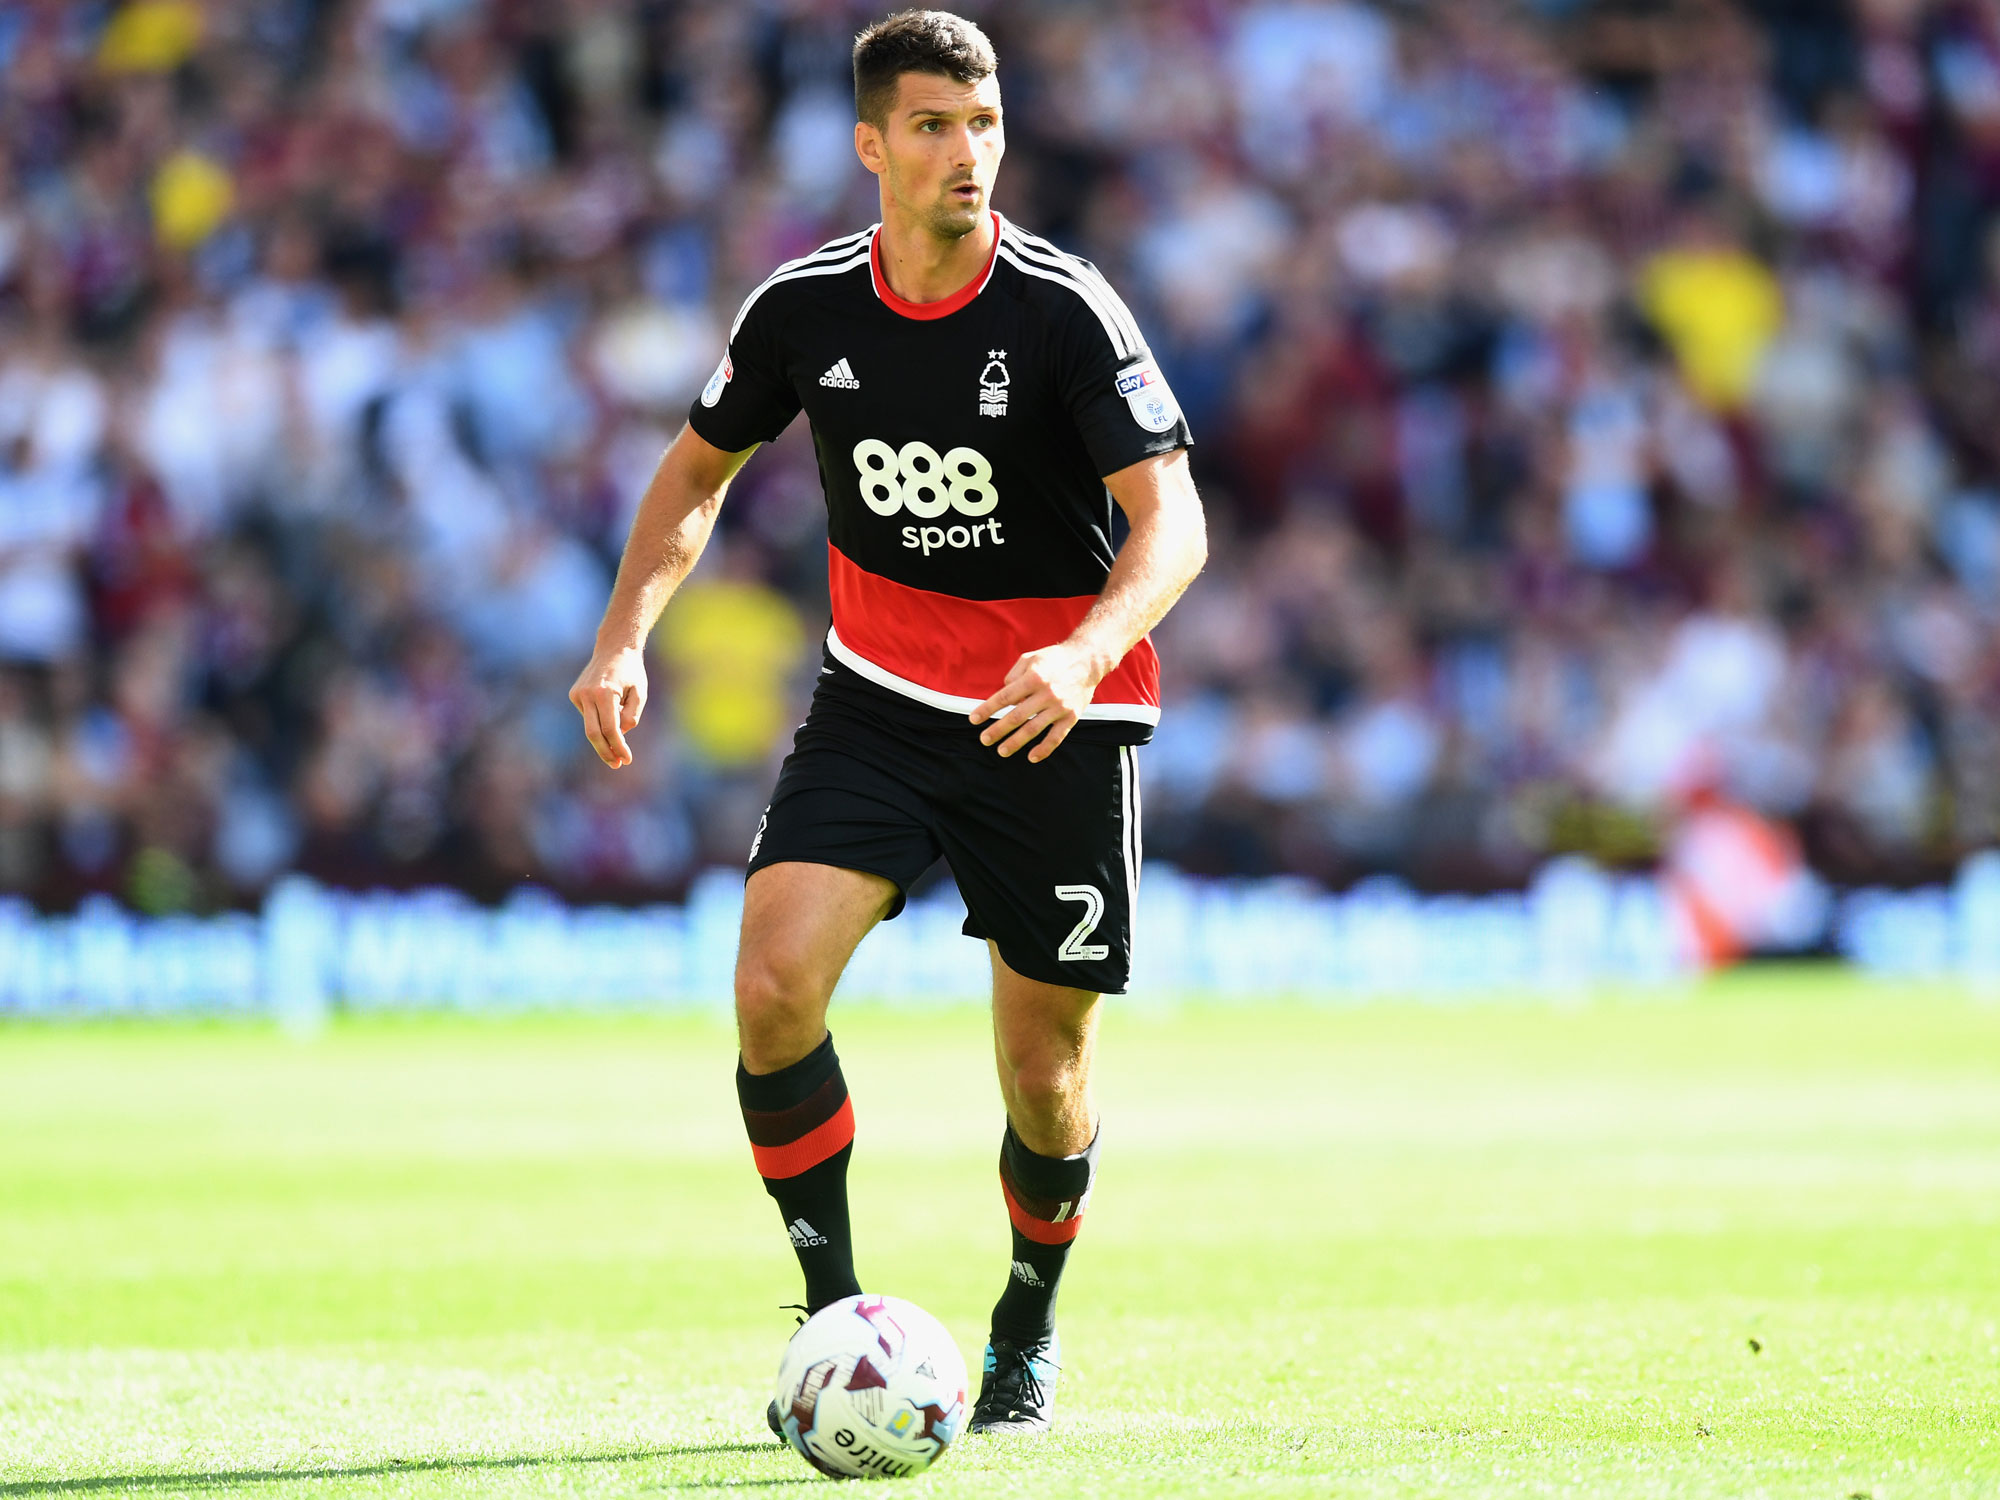 Eric Lichaj returns to the USMNT after a strong season at Nottingham Forest